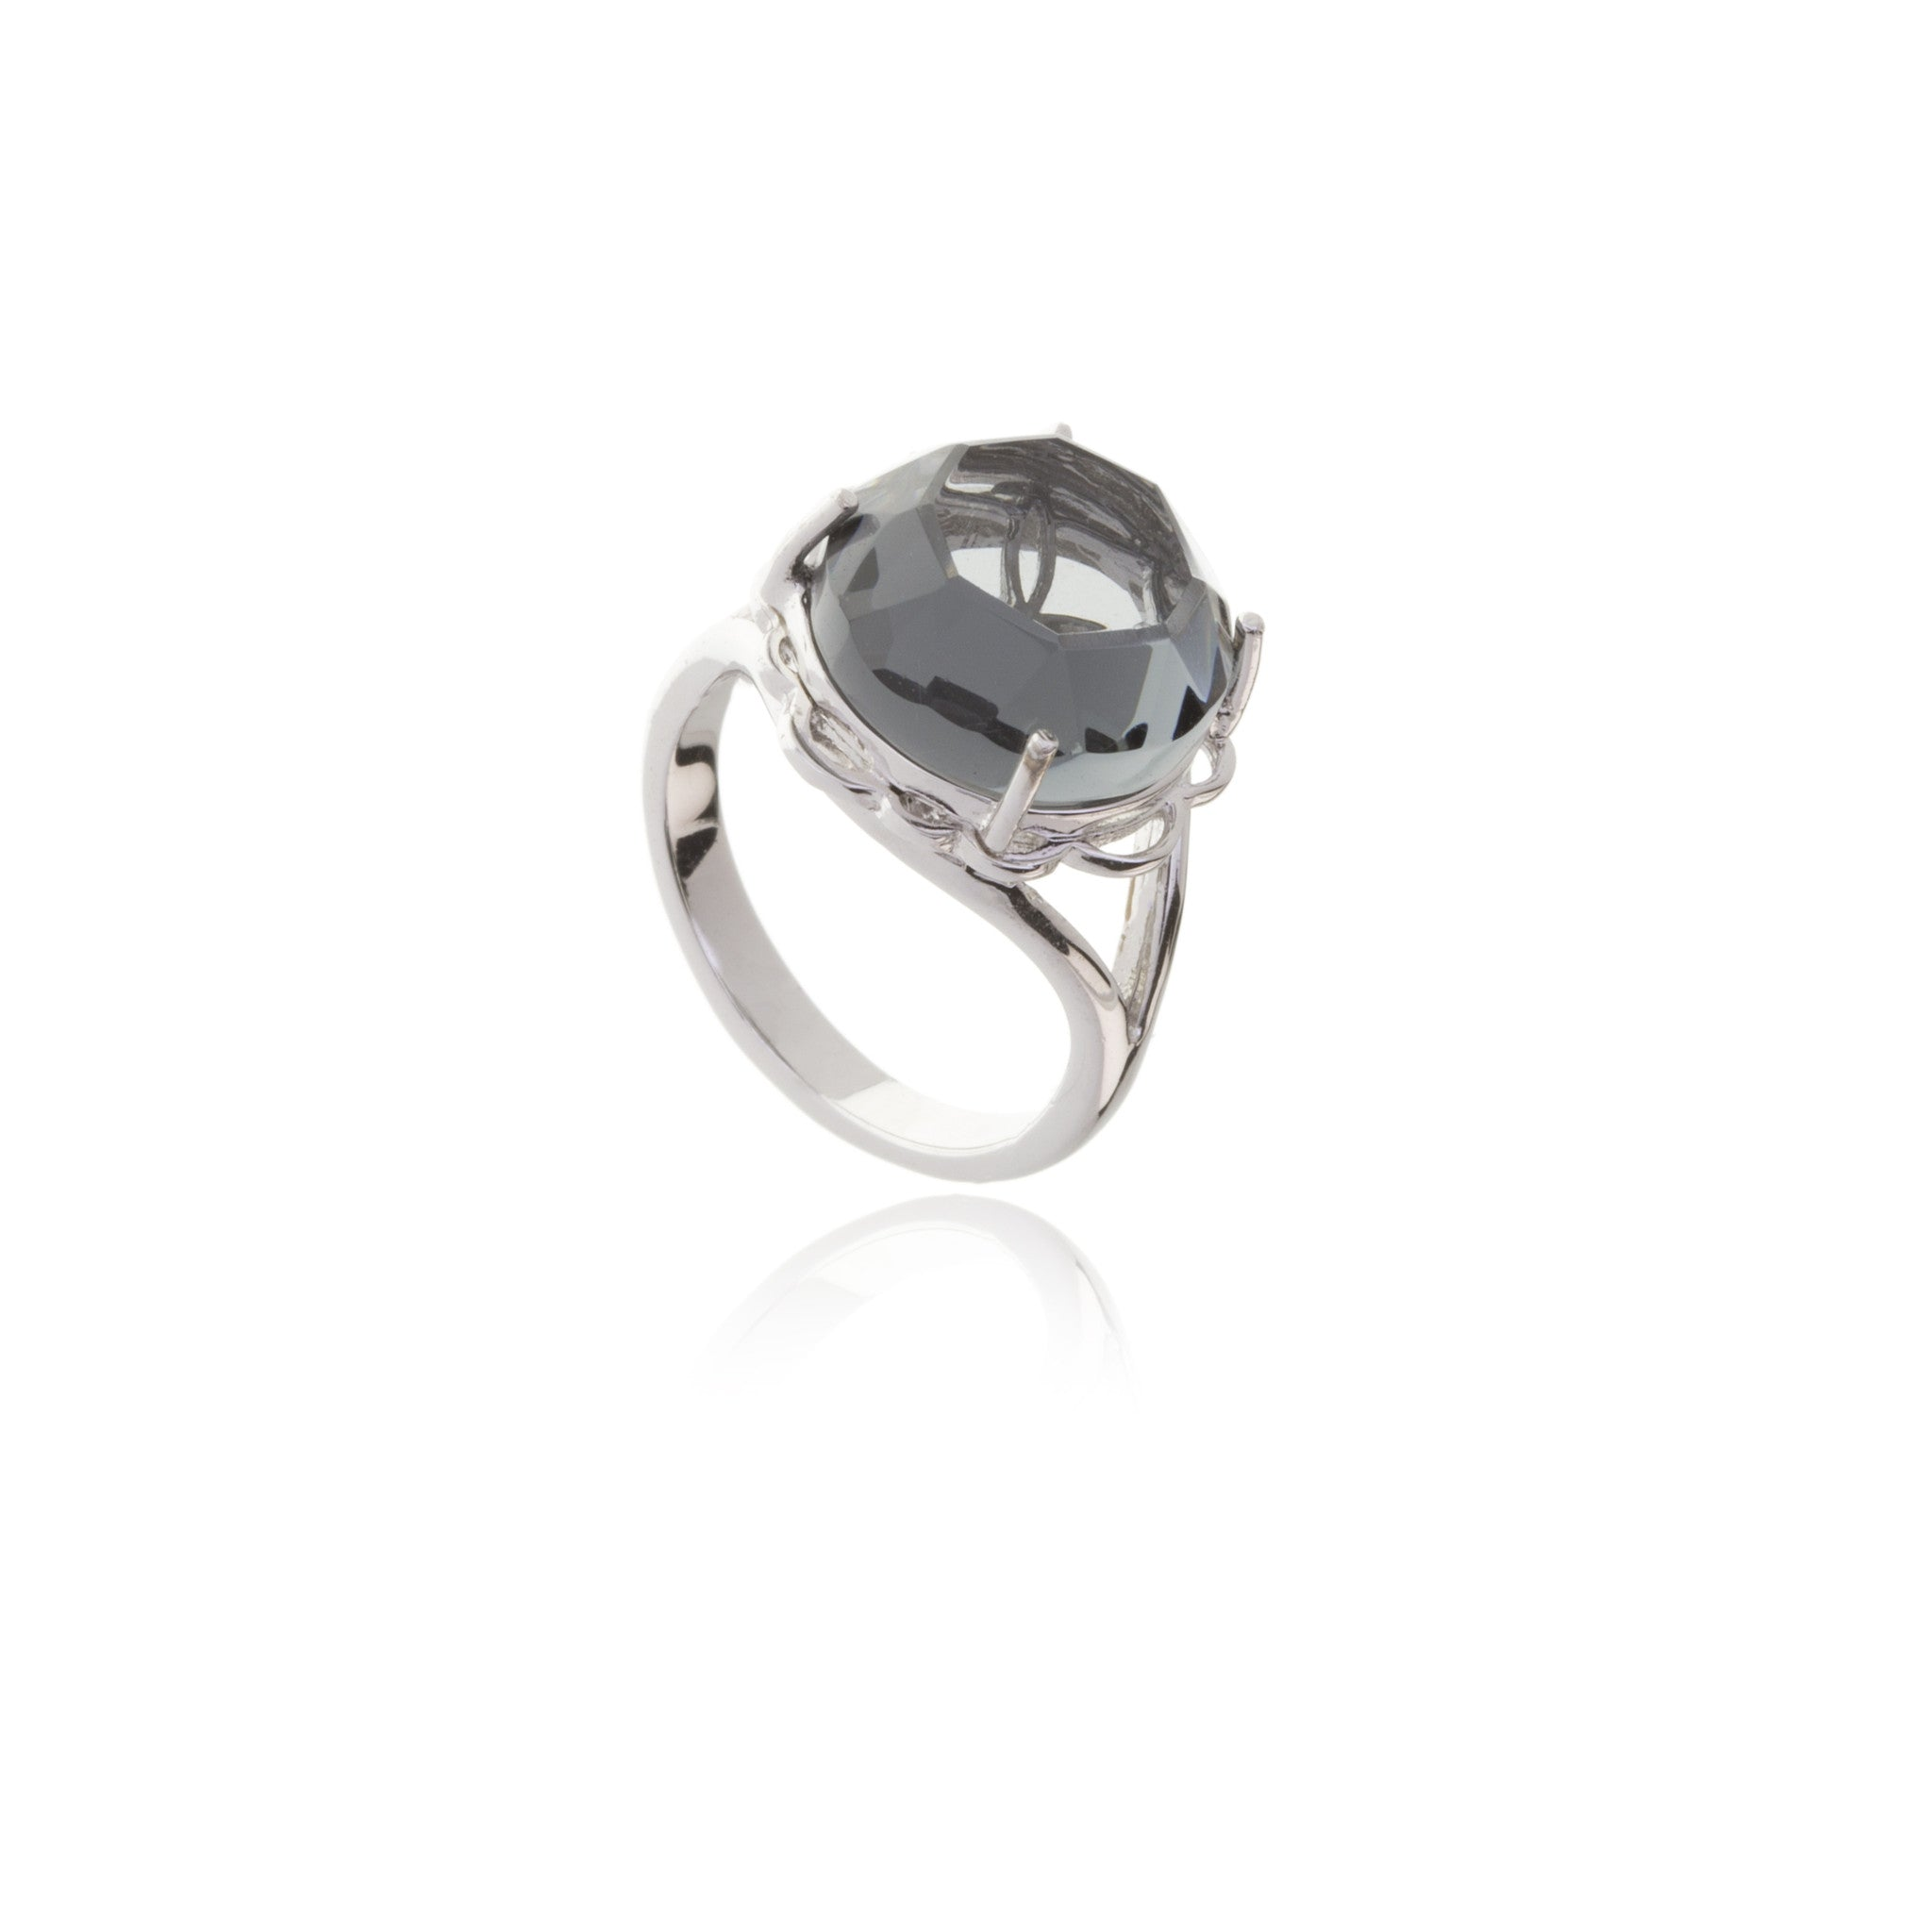 Signature Silver Crystal Ring - MCK Brands